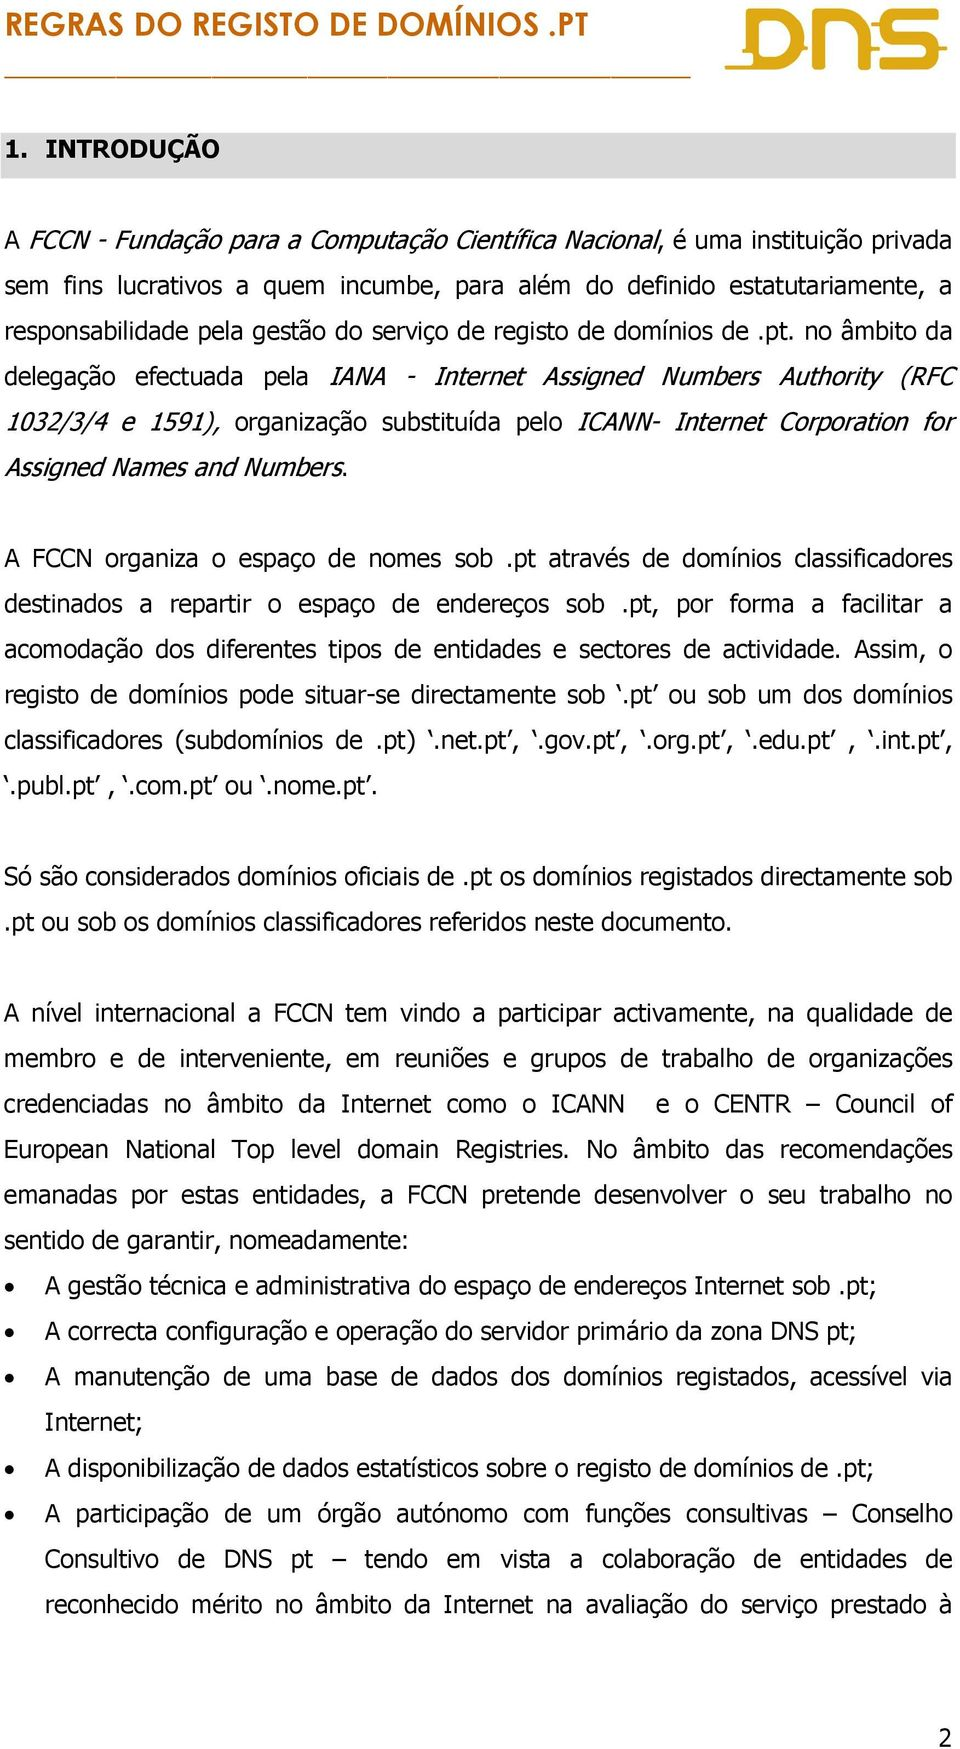 no âmbito da delegação efectuada pela IANA - Internet Assigned Numbers Authority (RFC 1032/3/4 e 1591), organização substituída pelo ICANN- Interne t Corporation fo r Assigned Names and Numbers.